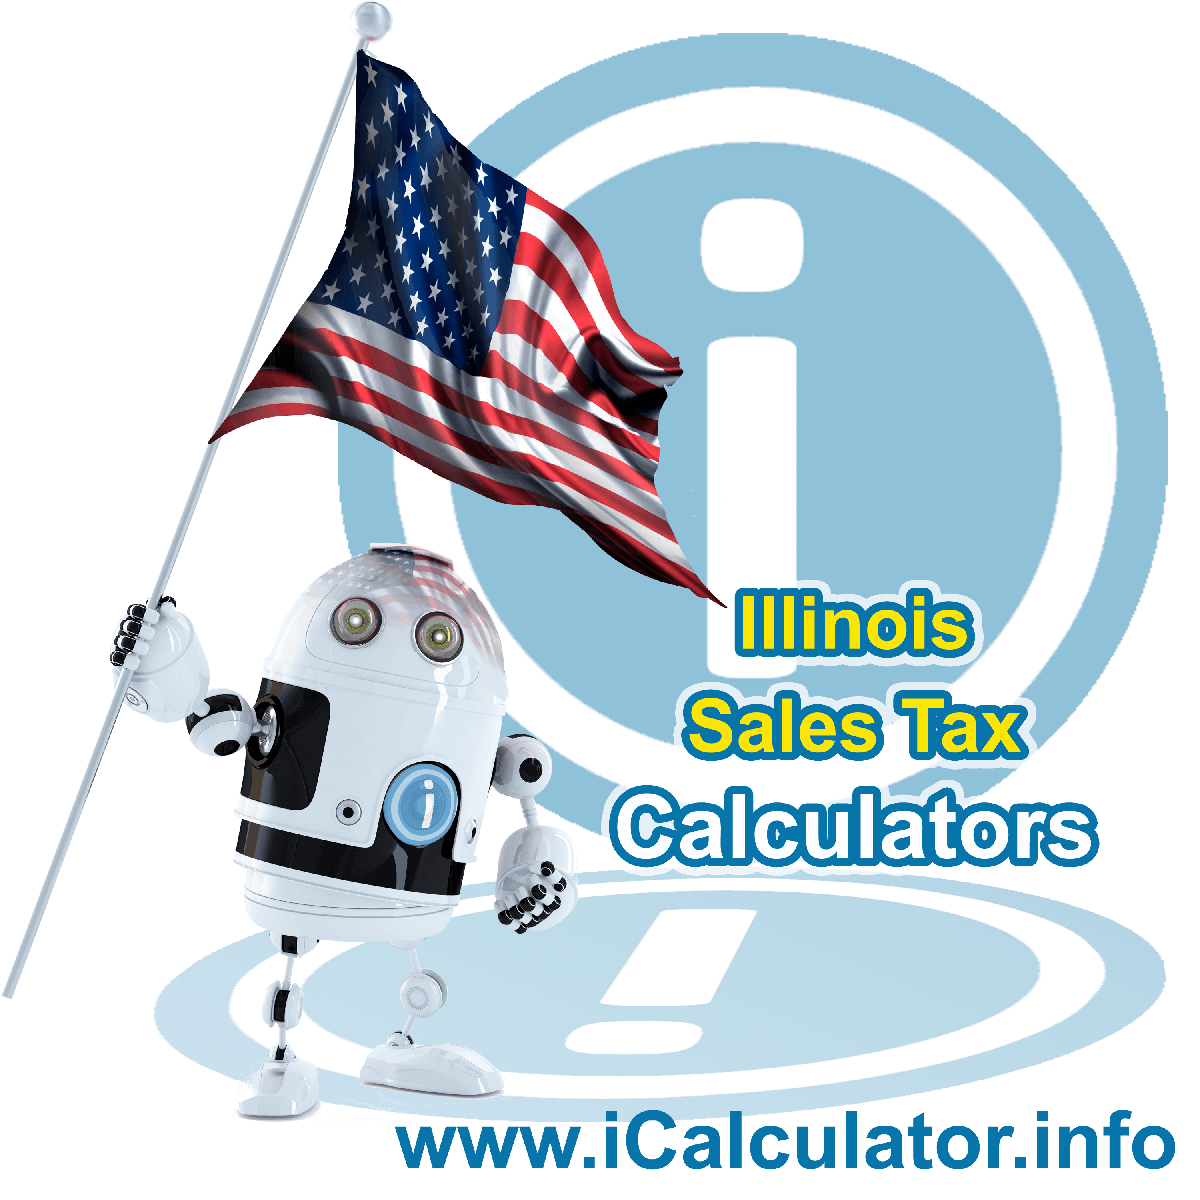 Summerfield Sales Rates: This image illustrates a calculator robot calculating Summerfield sales tax manually using the Summerfield Sales Tax Formula. You can use this information to calculate Summerfield Sales Tax manually or use the Summerfield Sales Tax Calculator to calculate sales tax online.